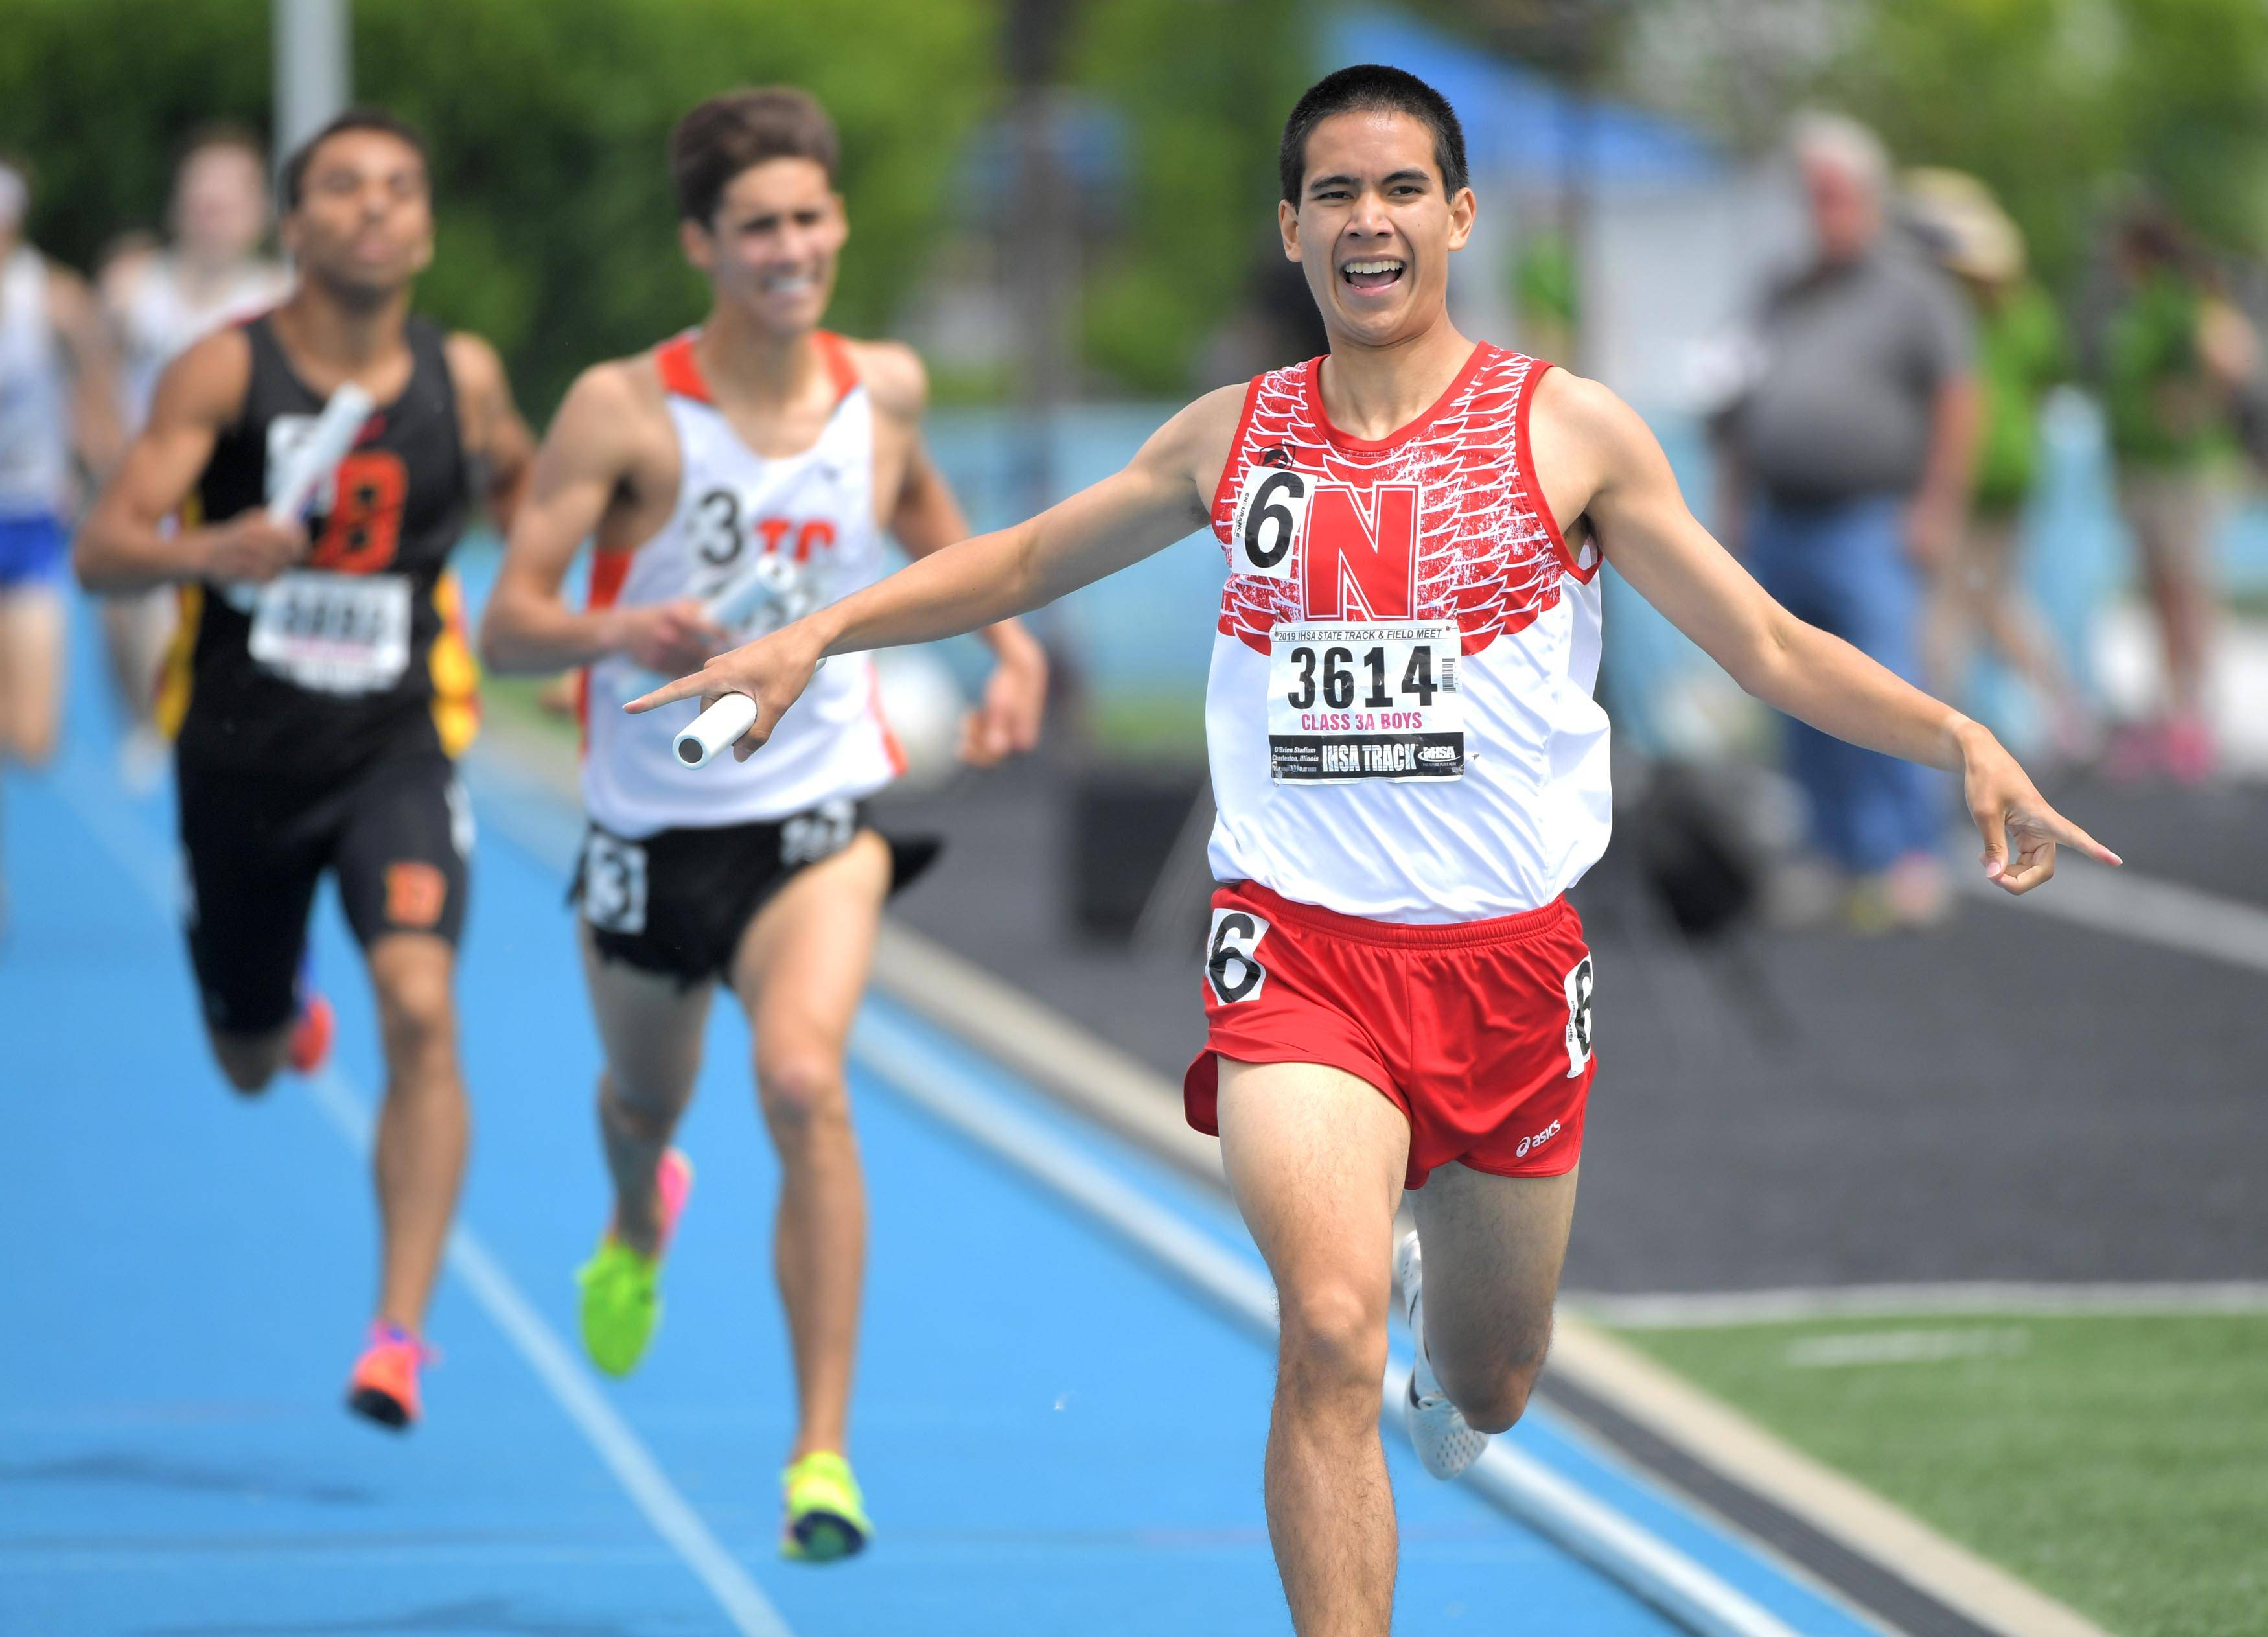 Naperville Central's Thomas Shilgalis finishes his anchor leg in first place in the Class 3A 3,200-meter relay at the IHSA boys state track finals in Charleston Saturday.